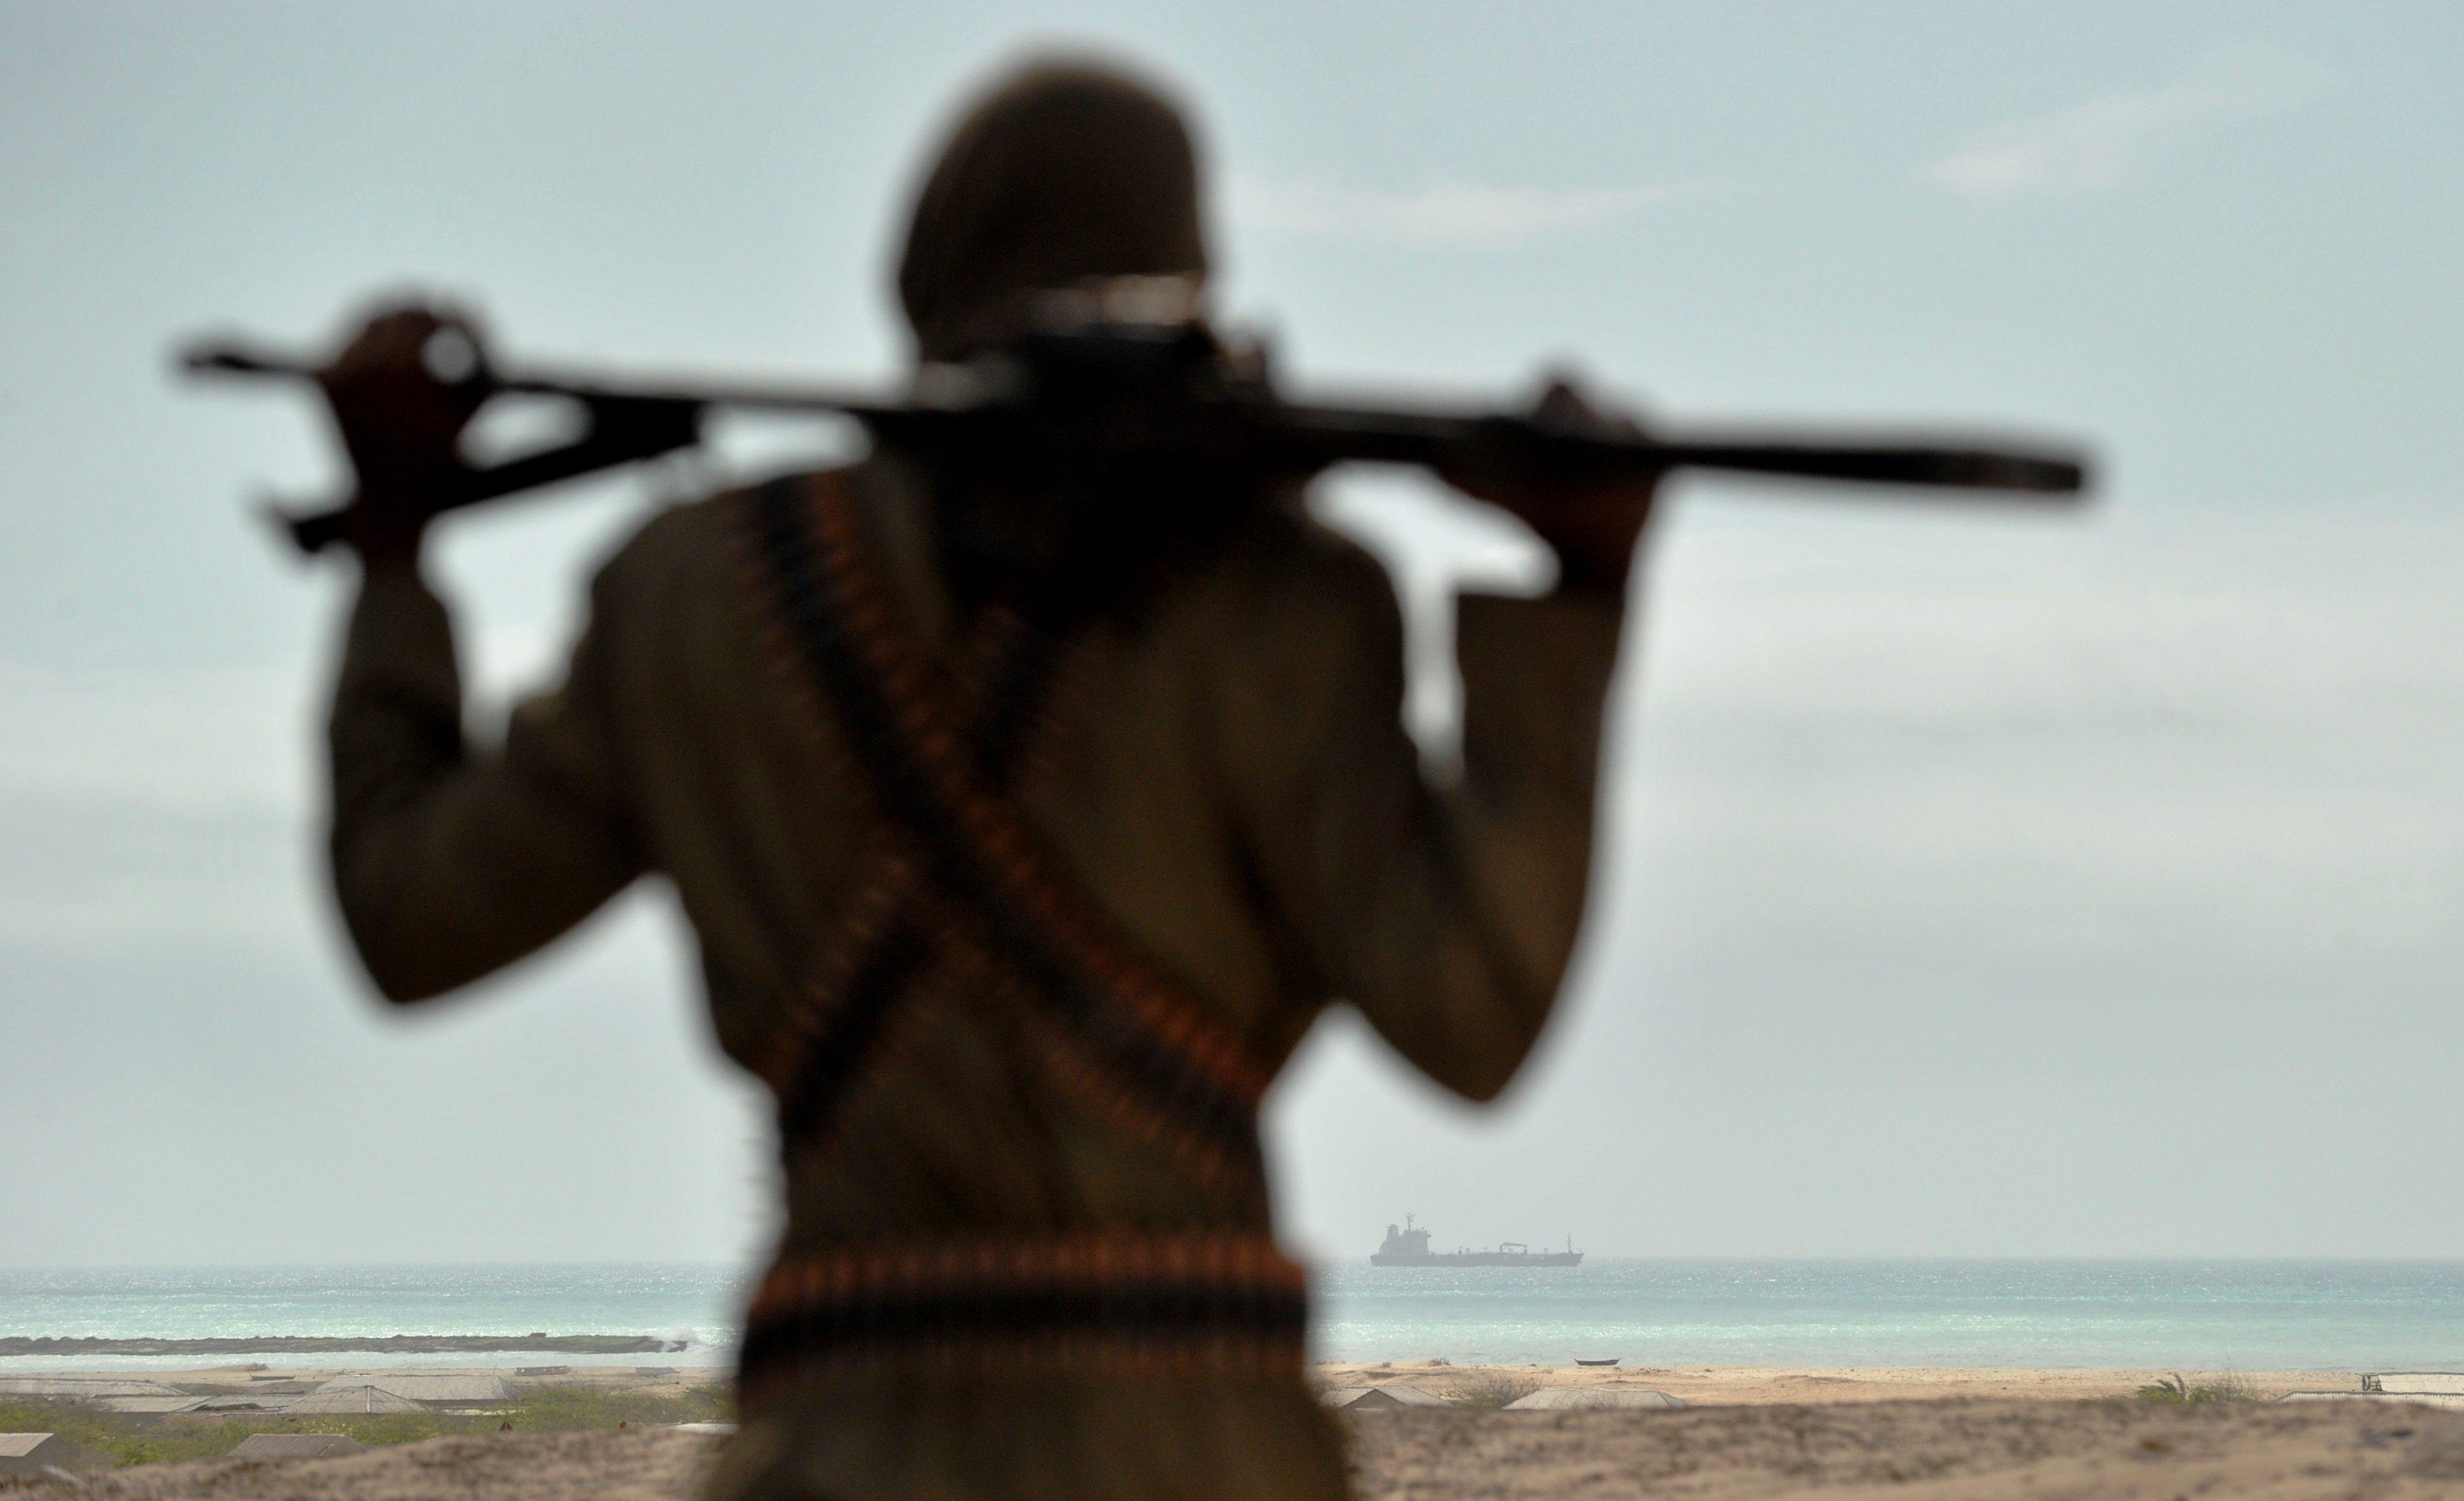 Why Is It So Hard to Stop West Africa's Vicious Pirates